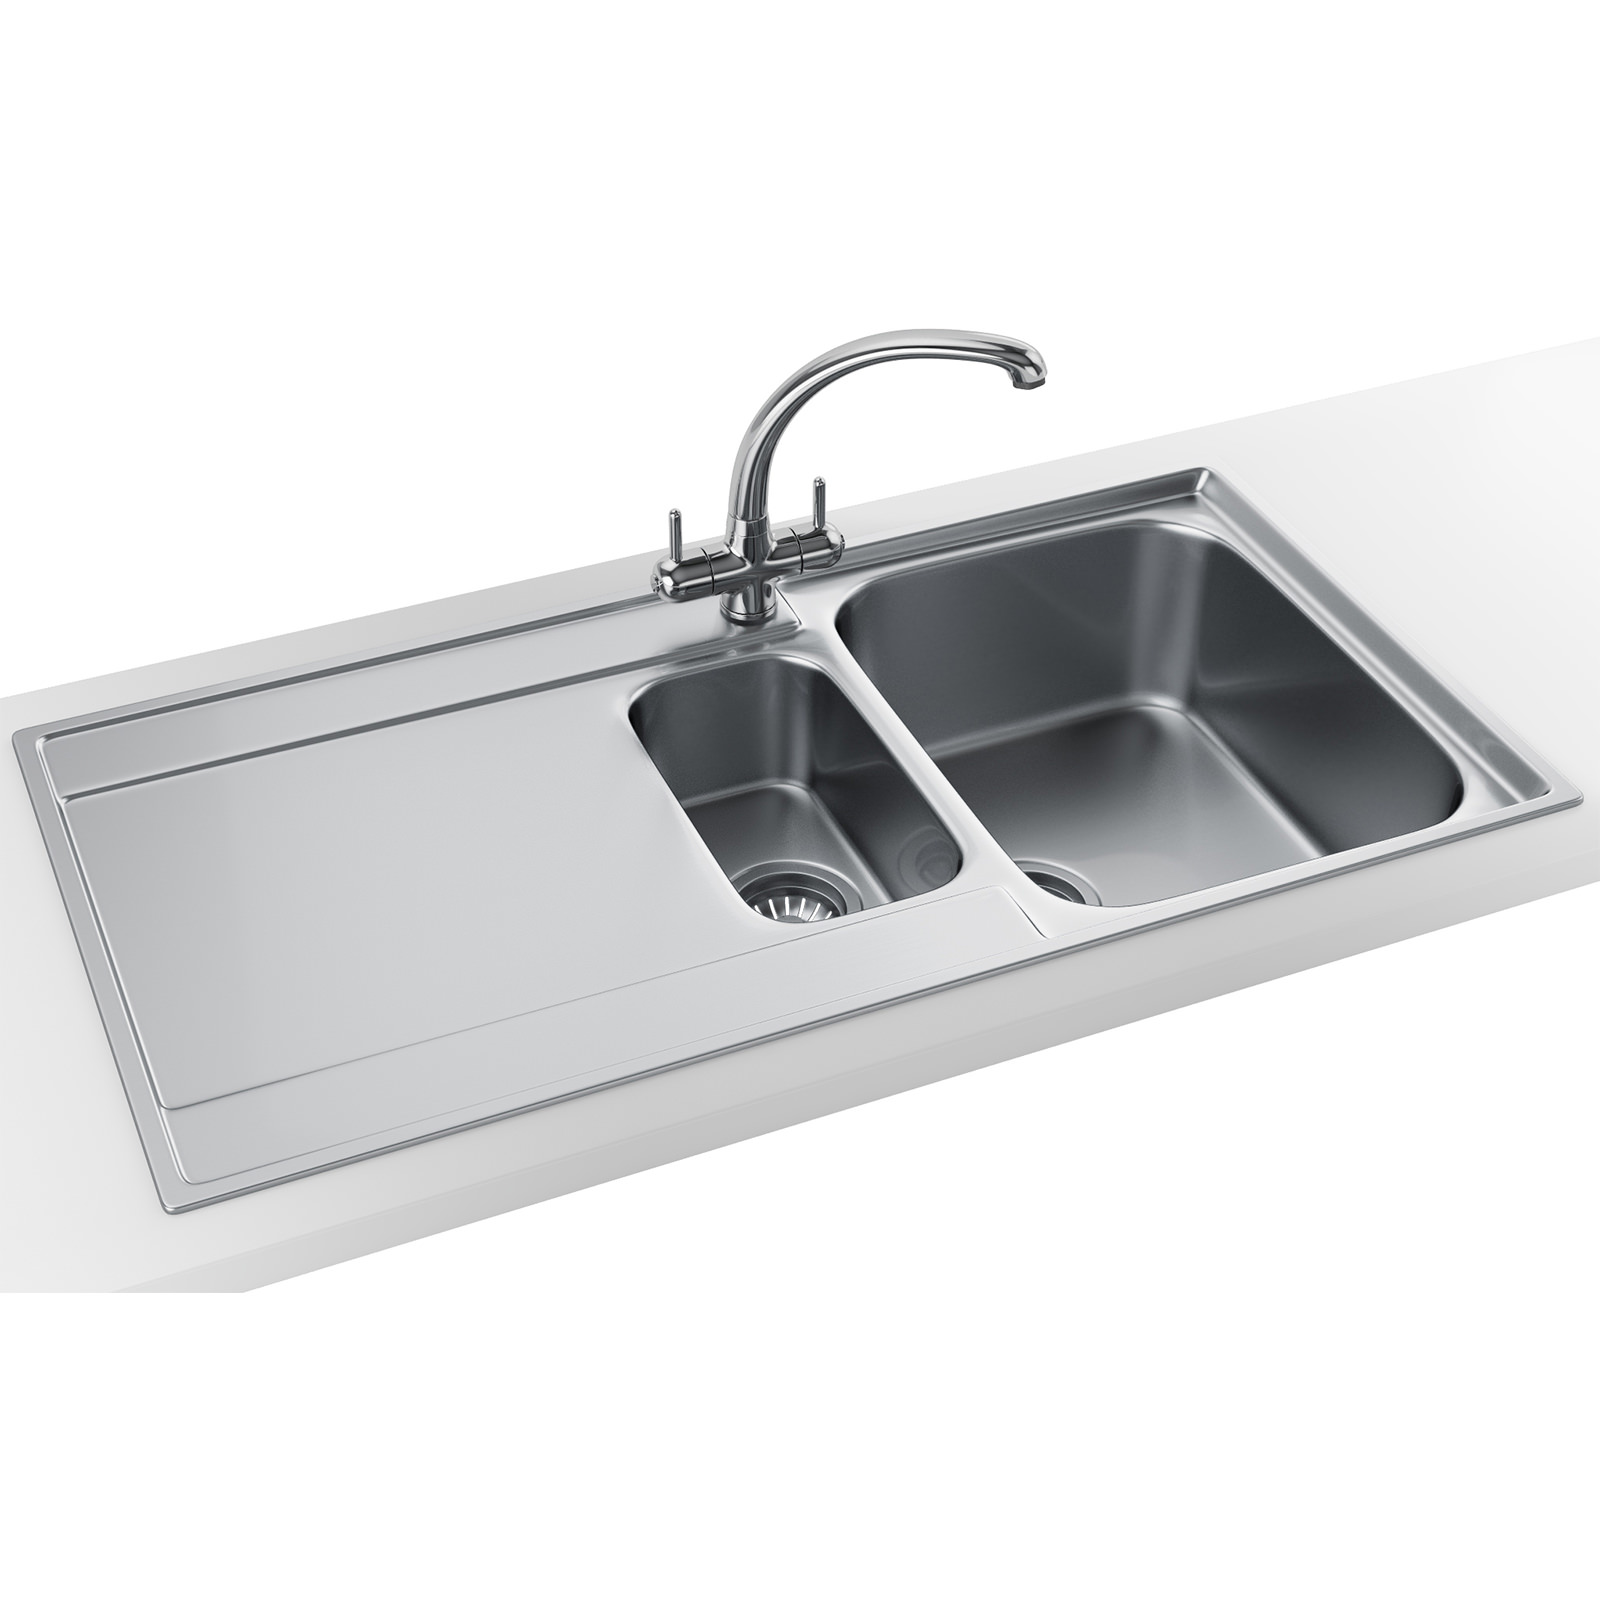 Franke Sinks And Taps : Franke Maris Slim-Top Propack MRX 251 Stainless Steel Sink And Tap ...